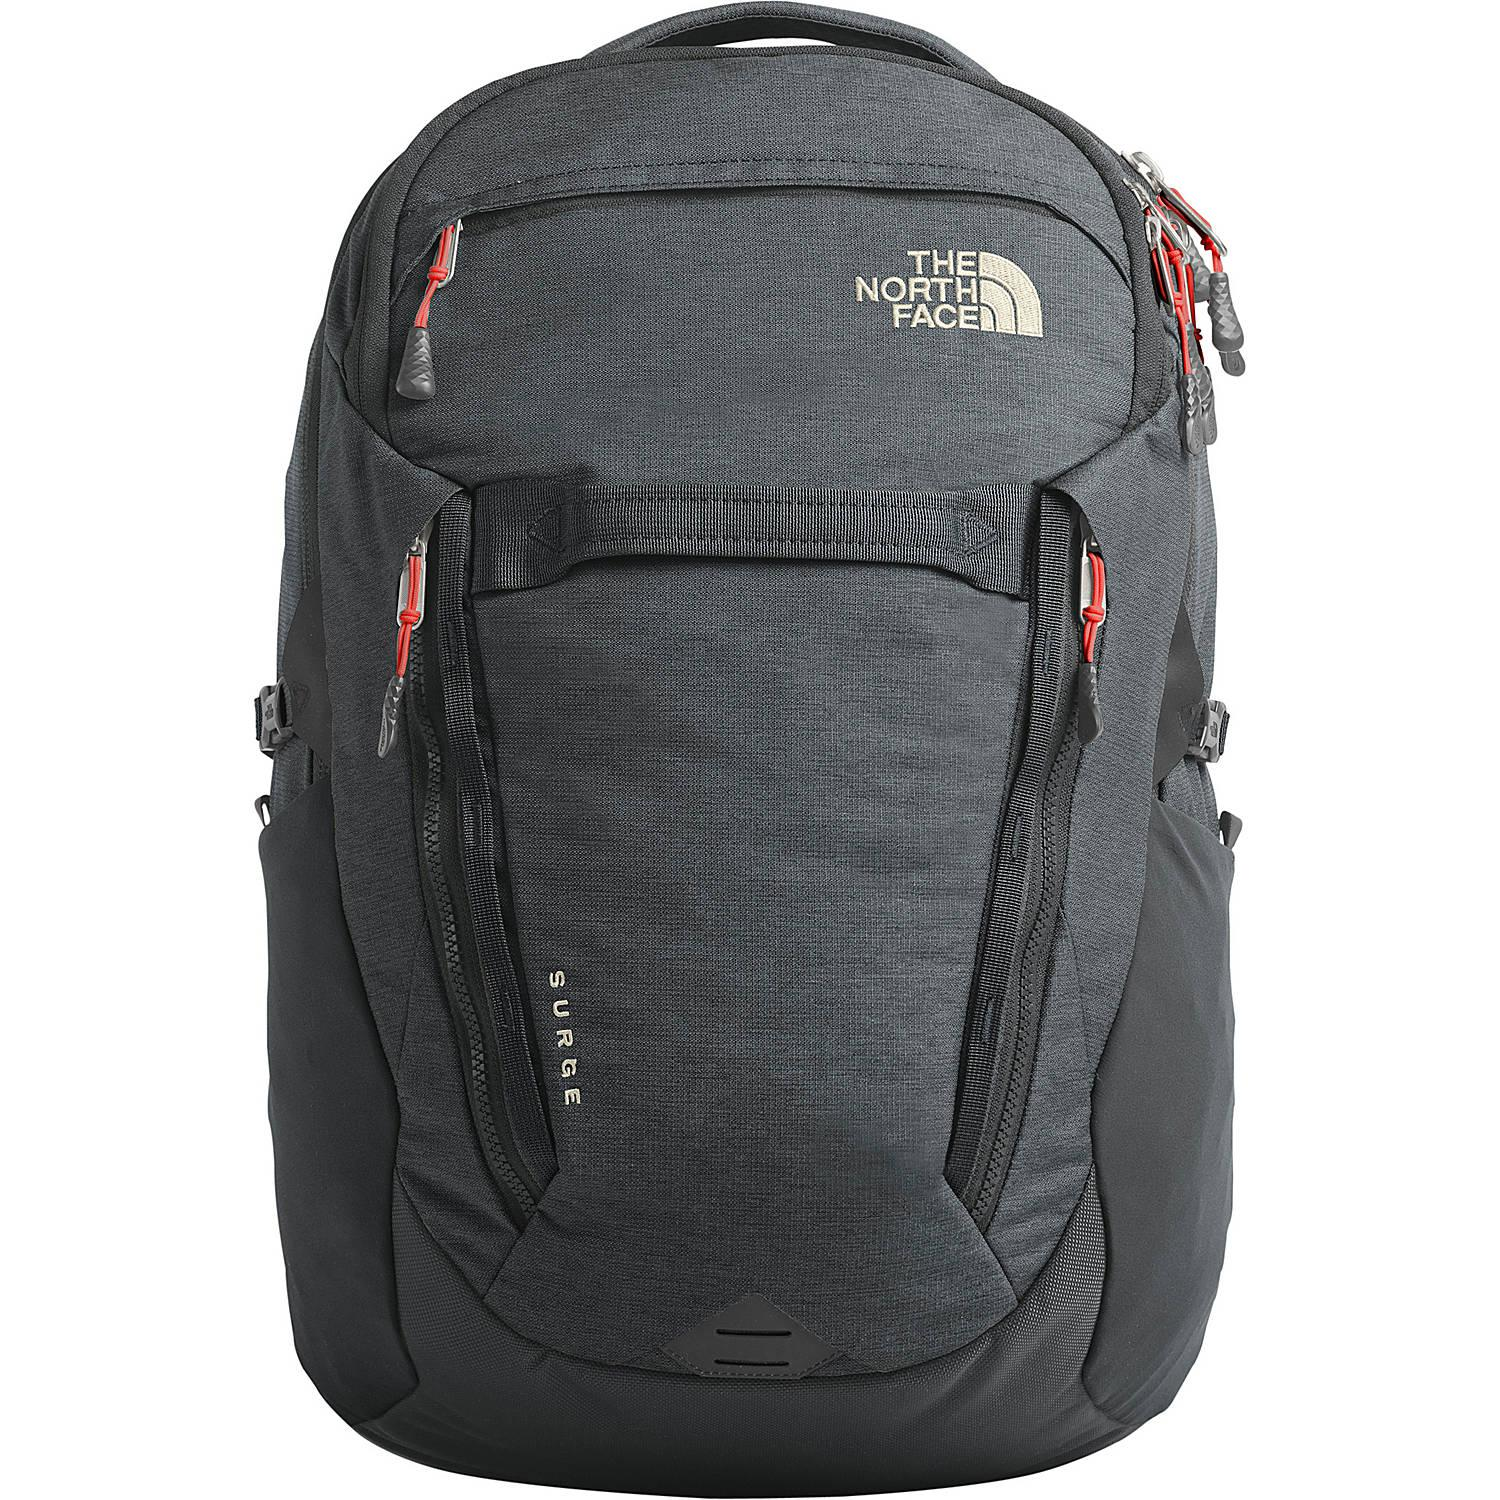 The North Face Womens Surge Laptop Backpack for $53.99 Shipped